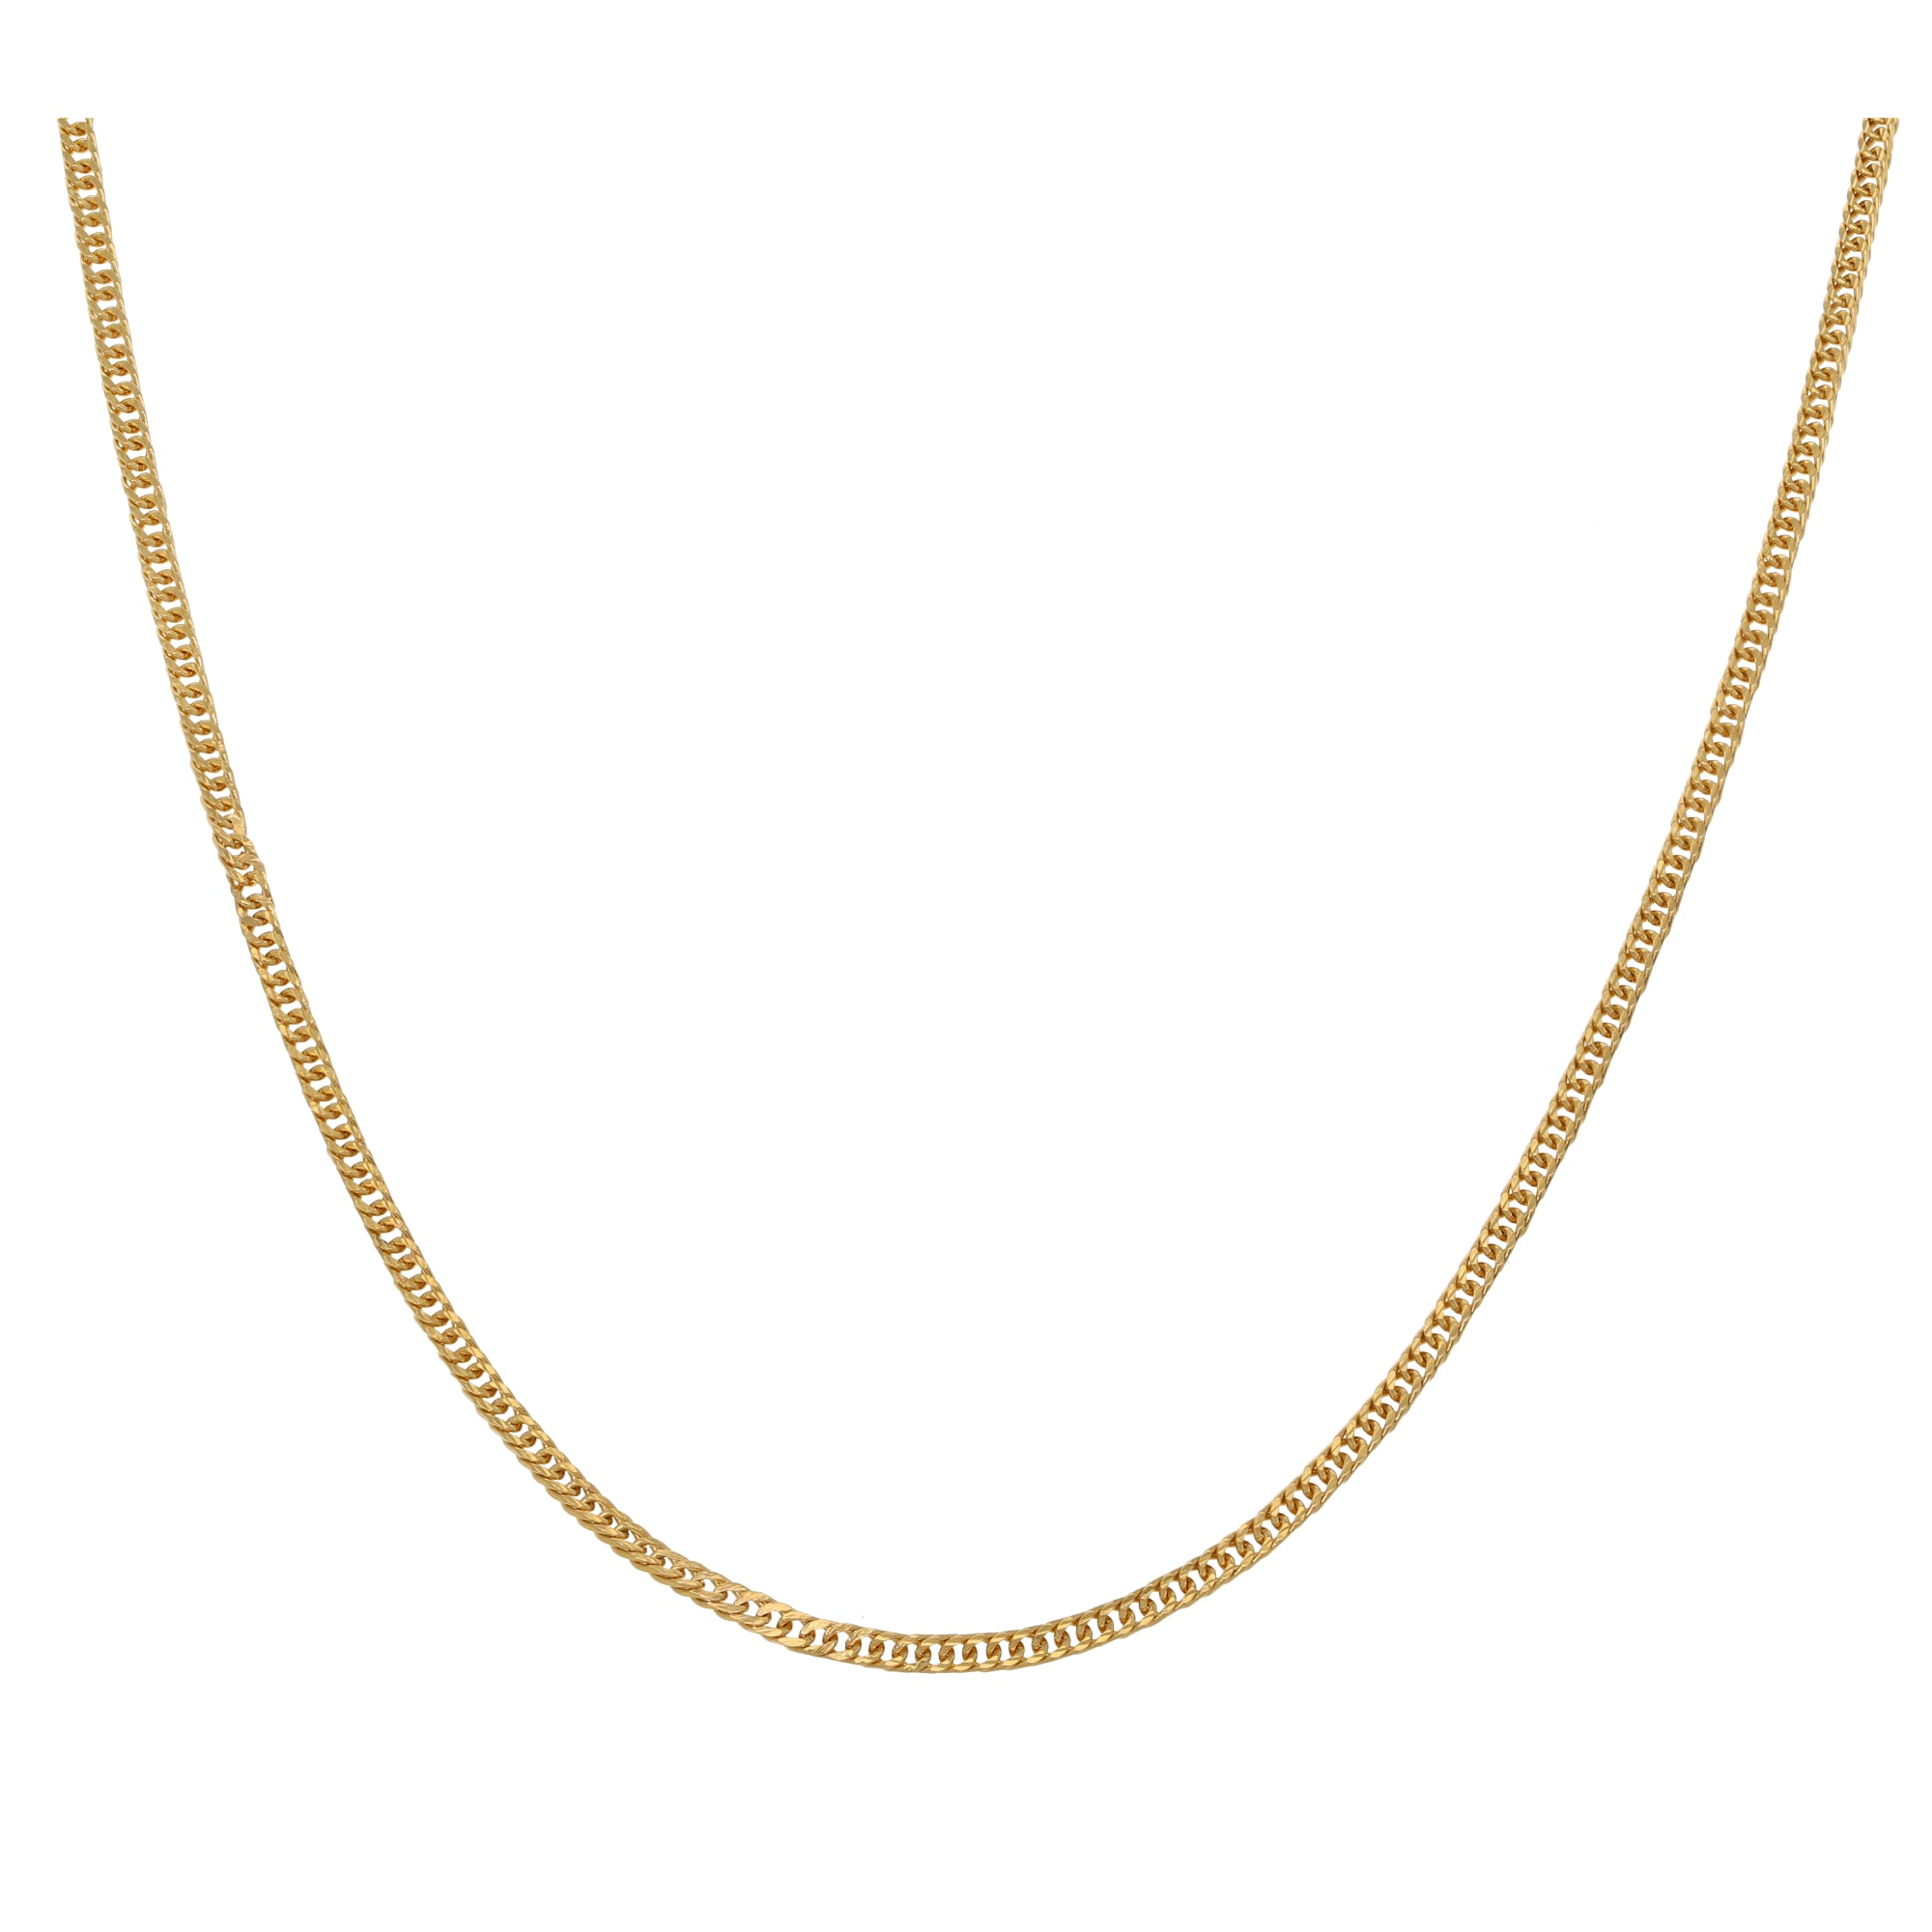 22ct Gold Ladies Curb Chain 26